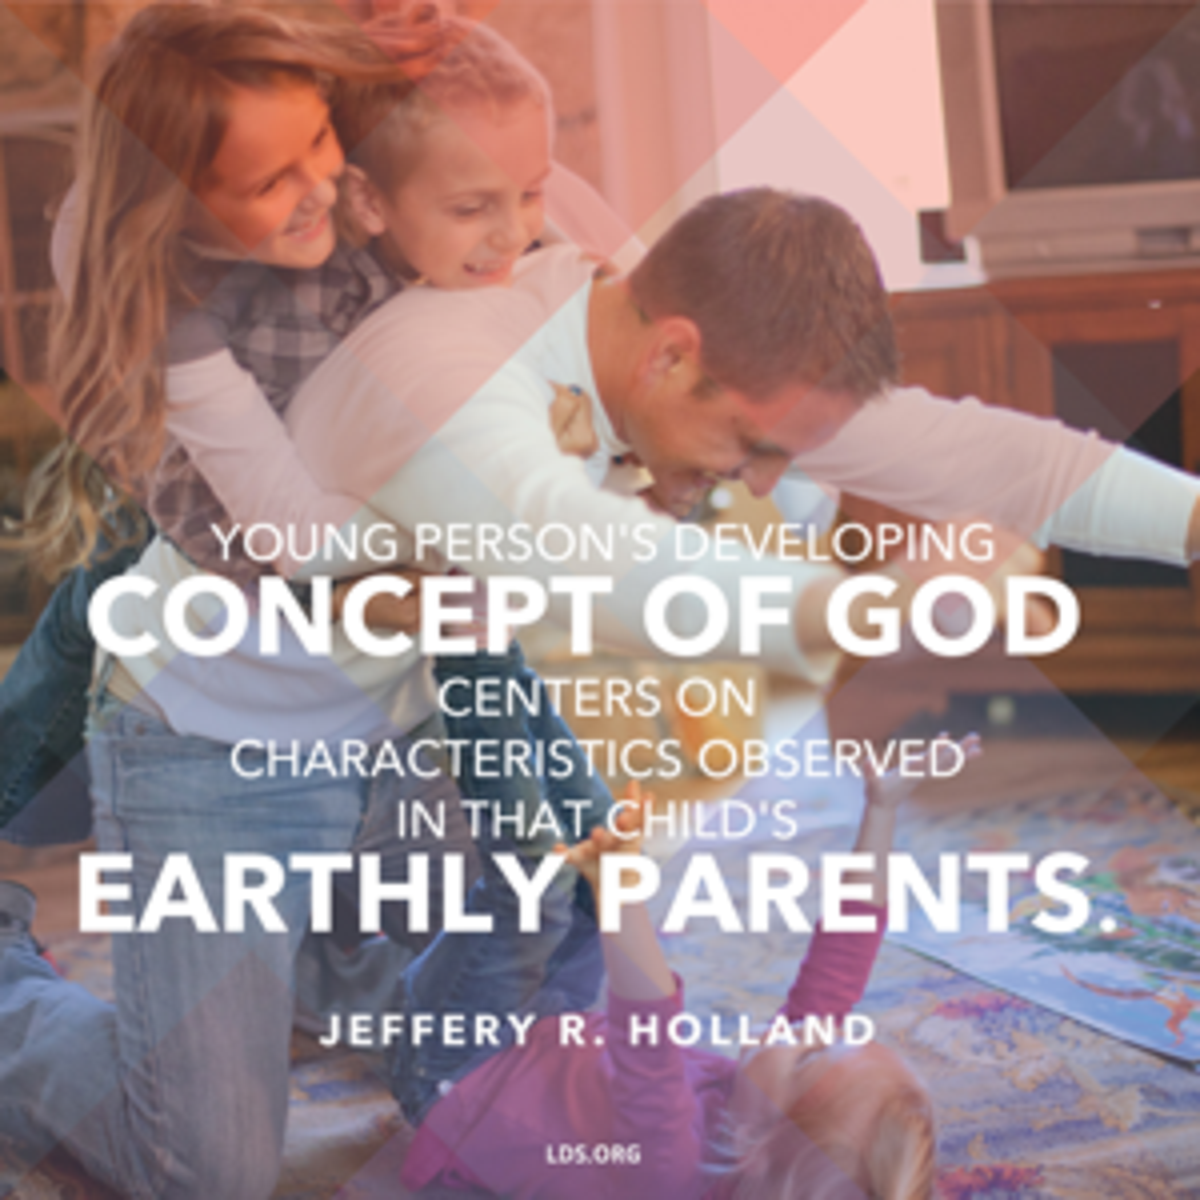 Elder Jeffery R. Holland quote on earthly parents.